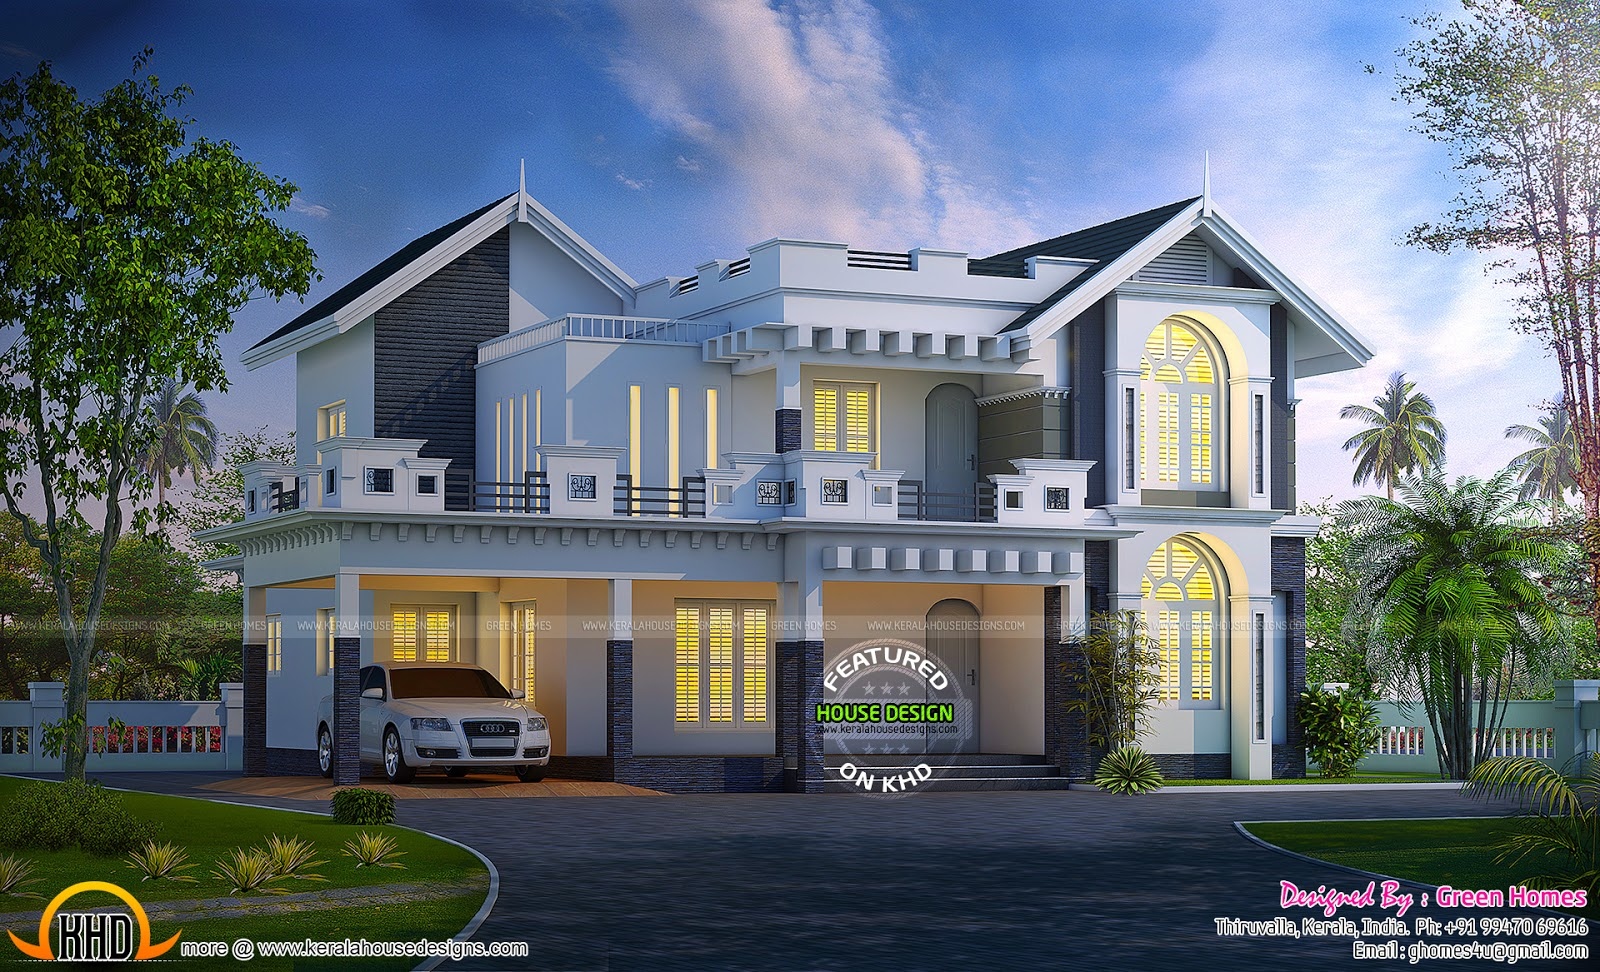 New kerala house plans for june 2015 keralahousedesigns for Latest house designs in kerala